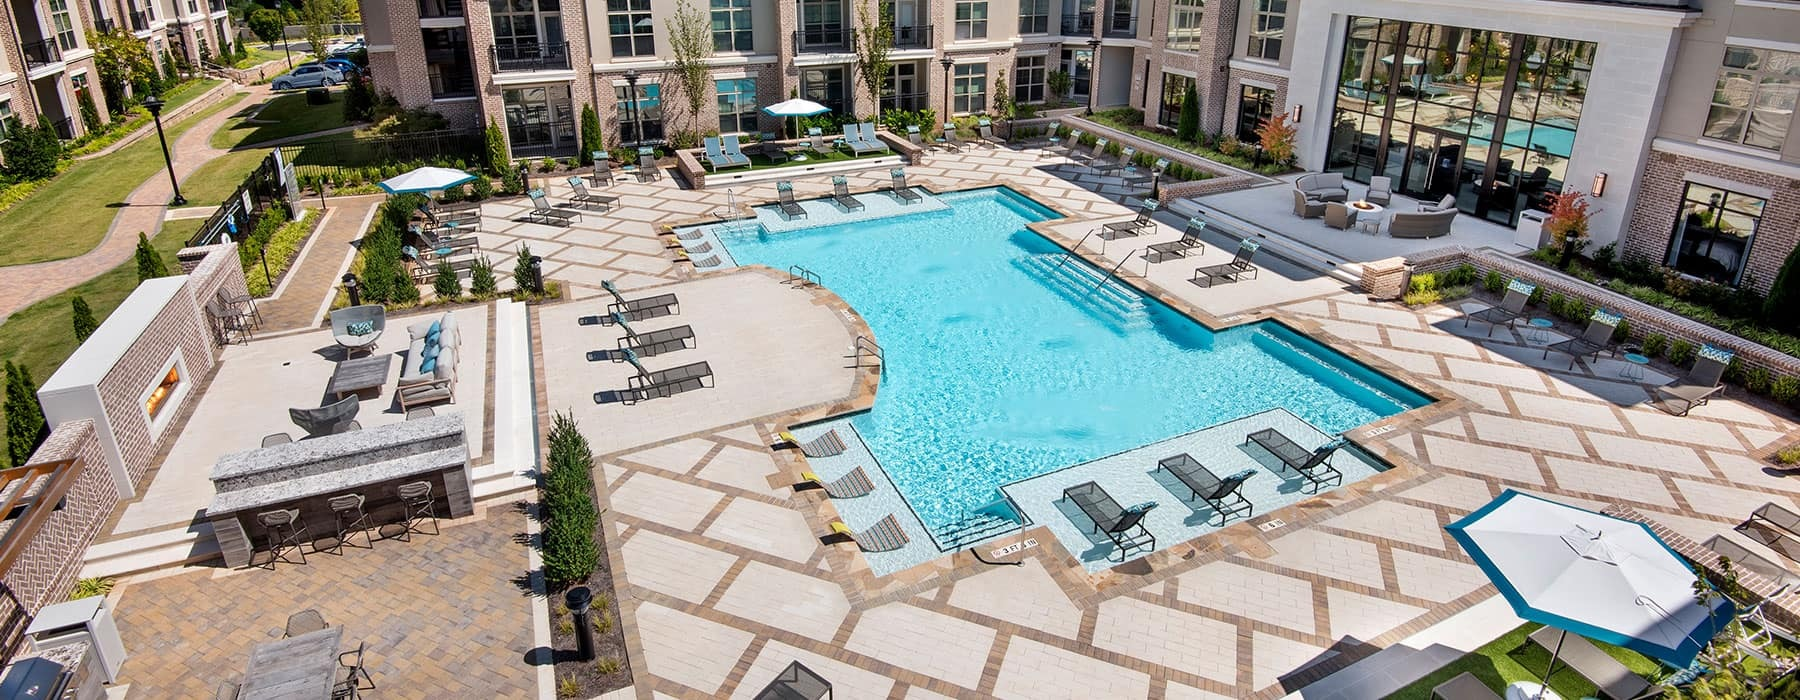 aerial view of swimming pool with modern tile-work and ample seating